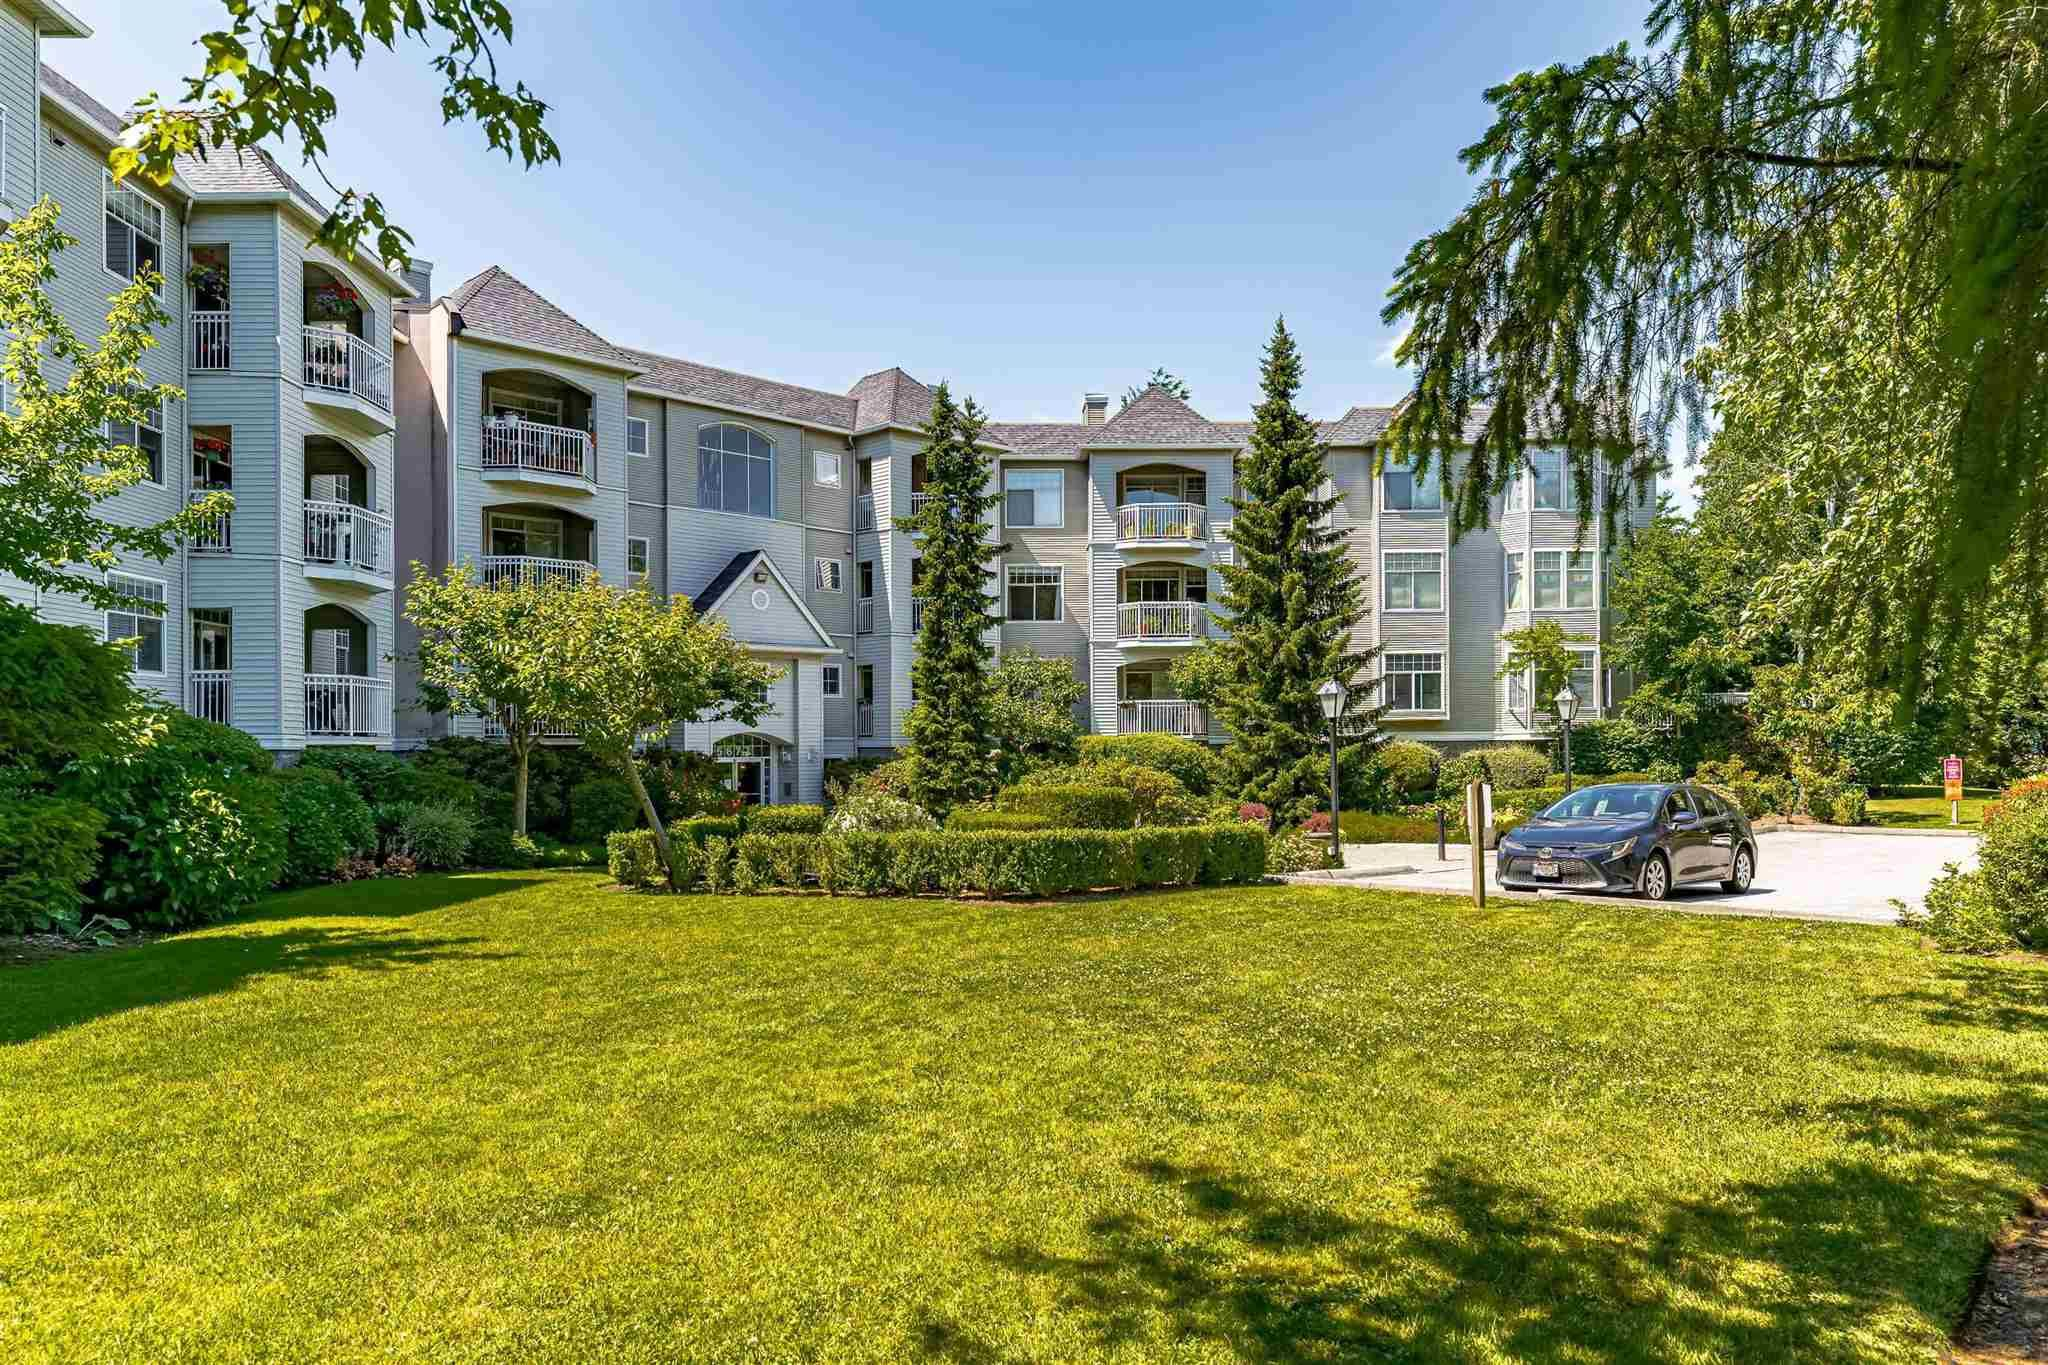 """Main Photo: 215 5677 208 Street in Langley: Langley City Condo for sale in """"Ivylea"""" : MLS®# R2595090"""